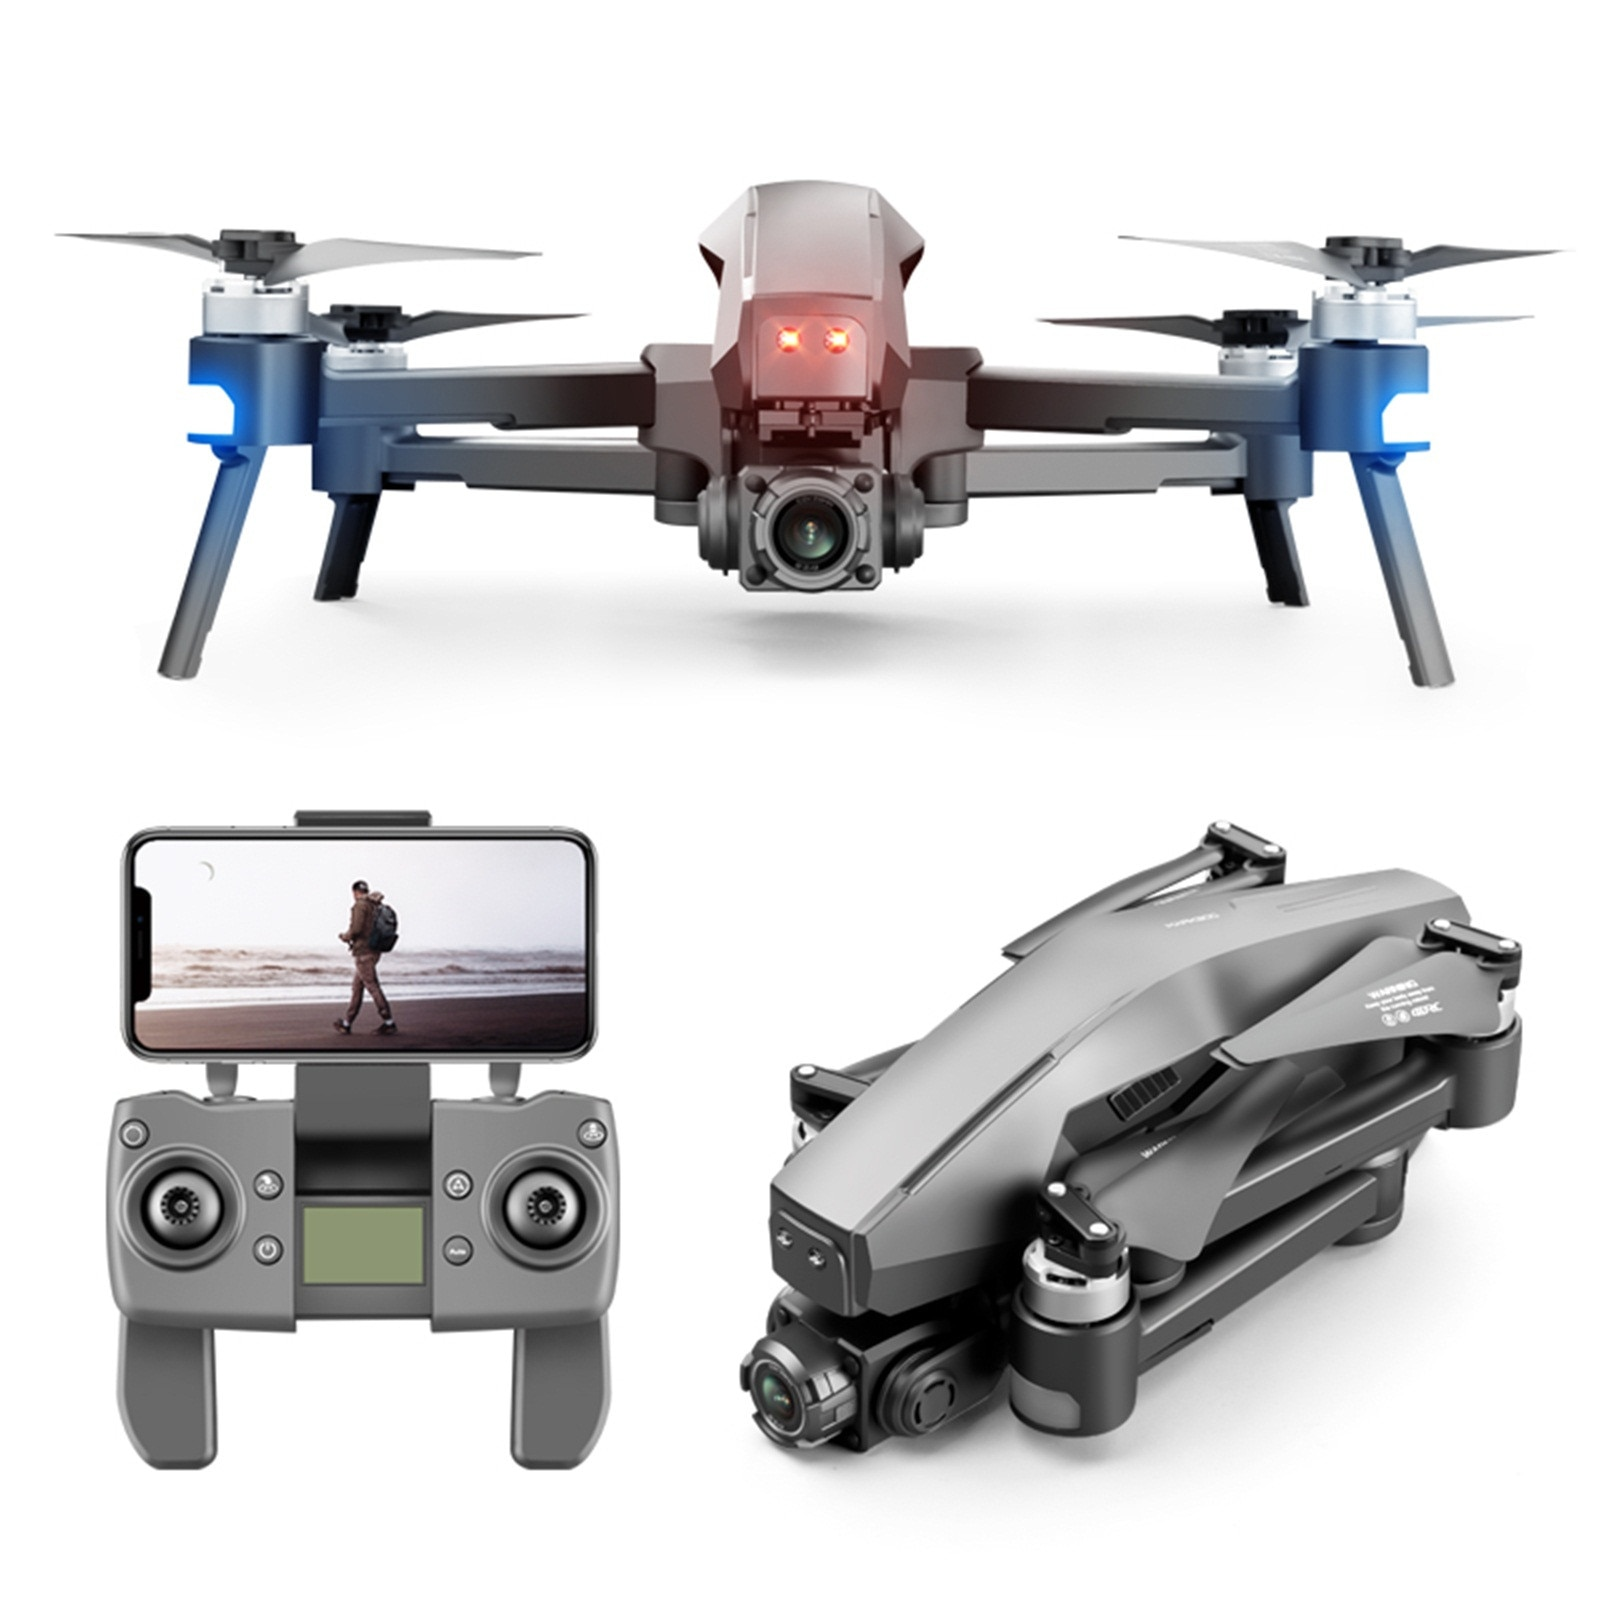 5G Profession RCDrone 4D M1 Pro Gimbal Professional 4K HD Camera Brushless Motor GPS Wifi Fpv Electric Induction Drones Toys